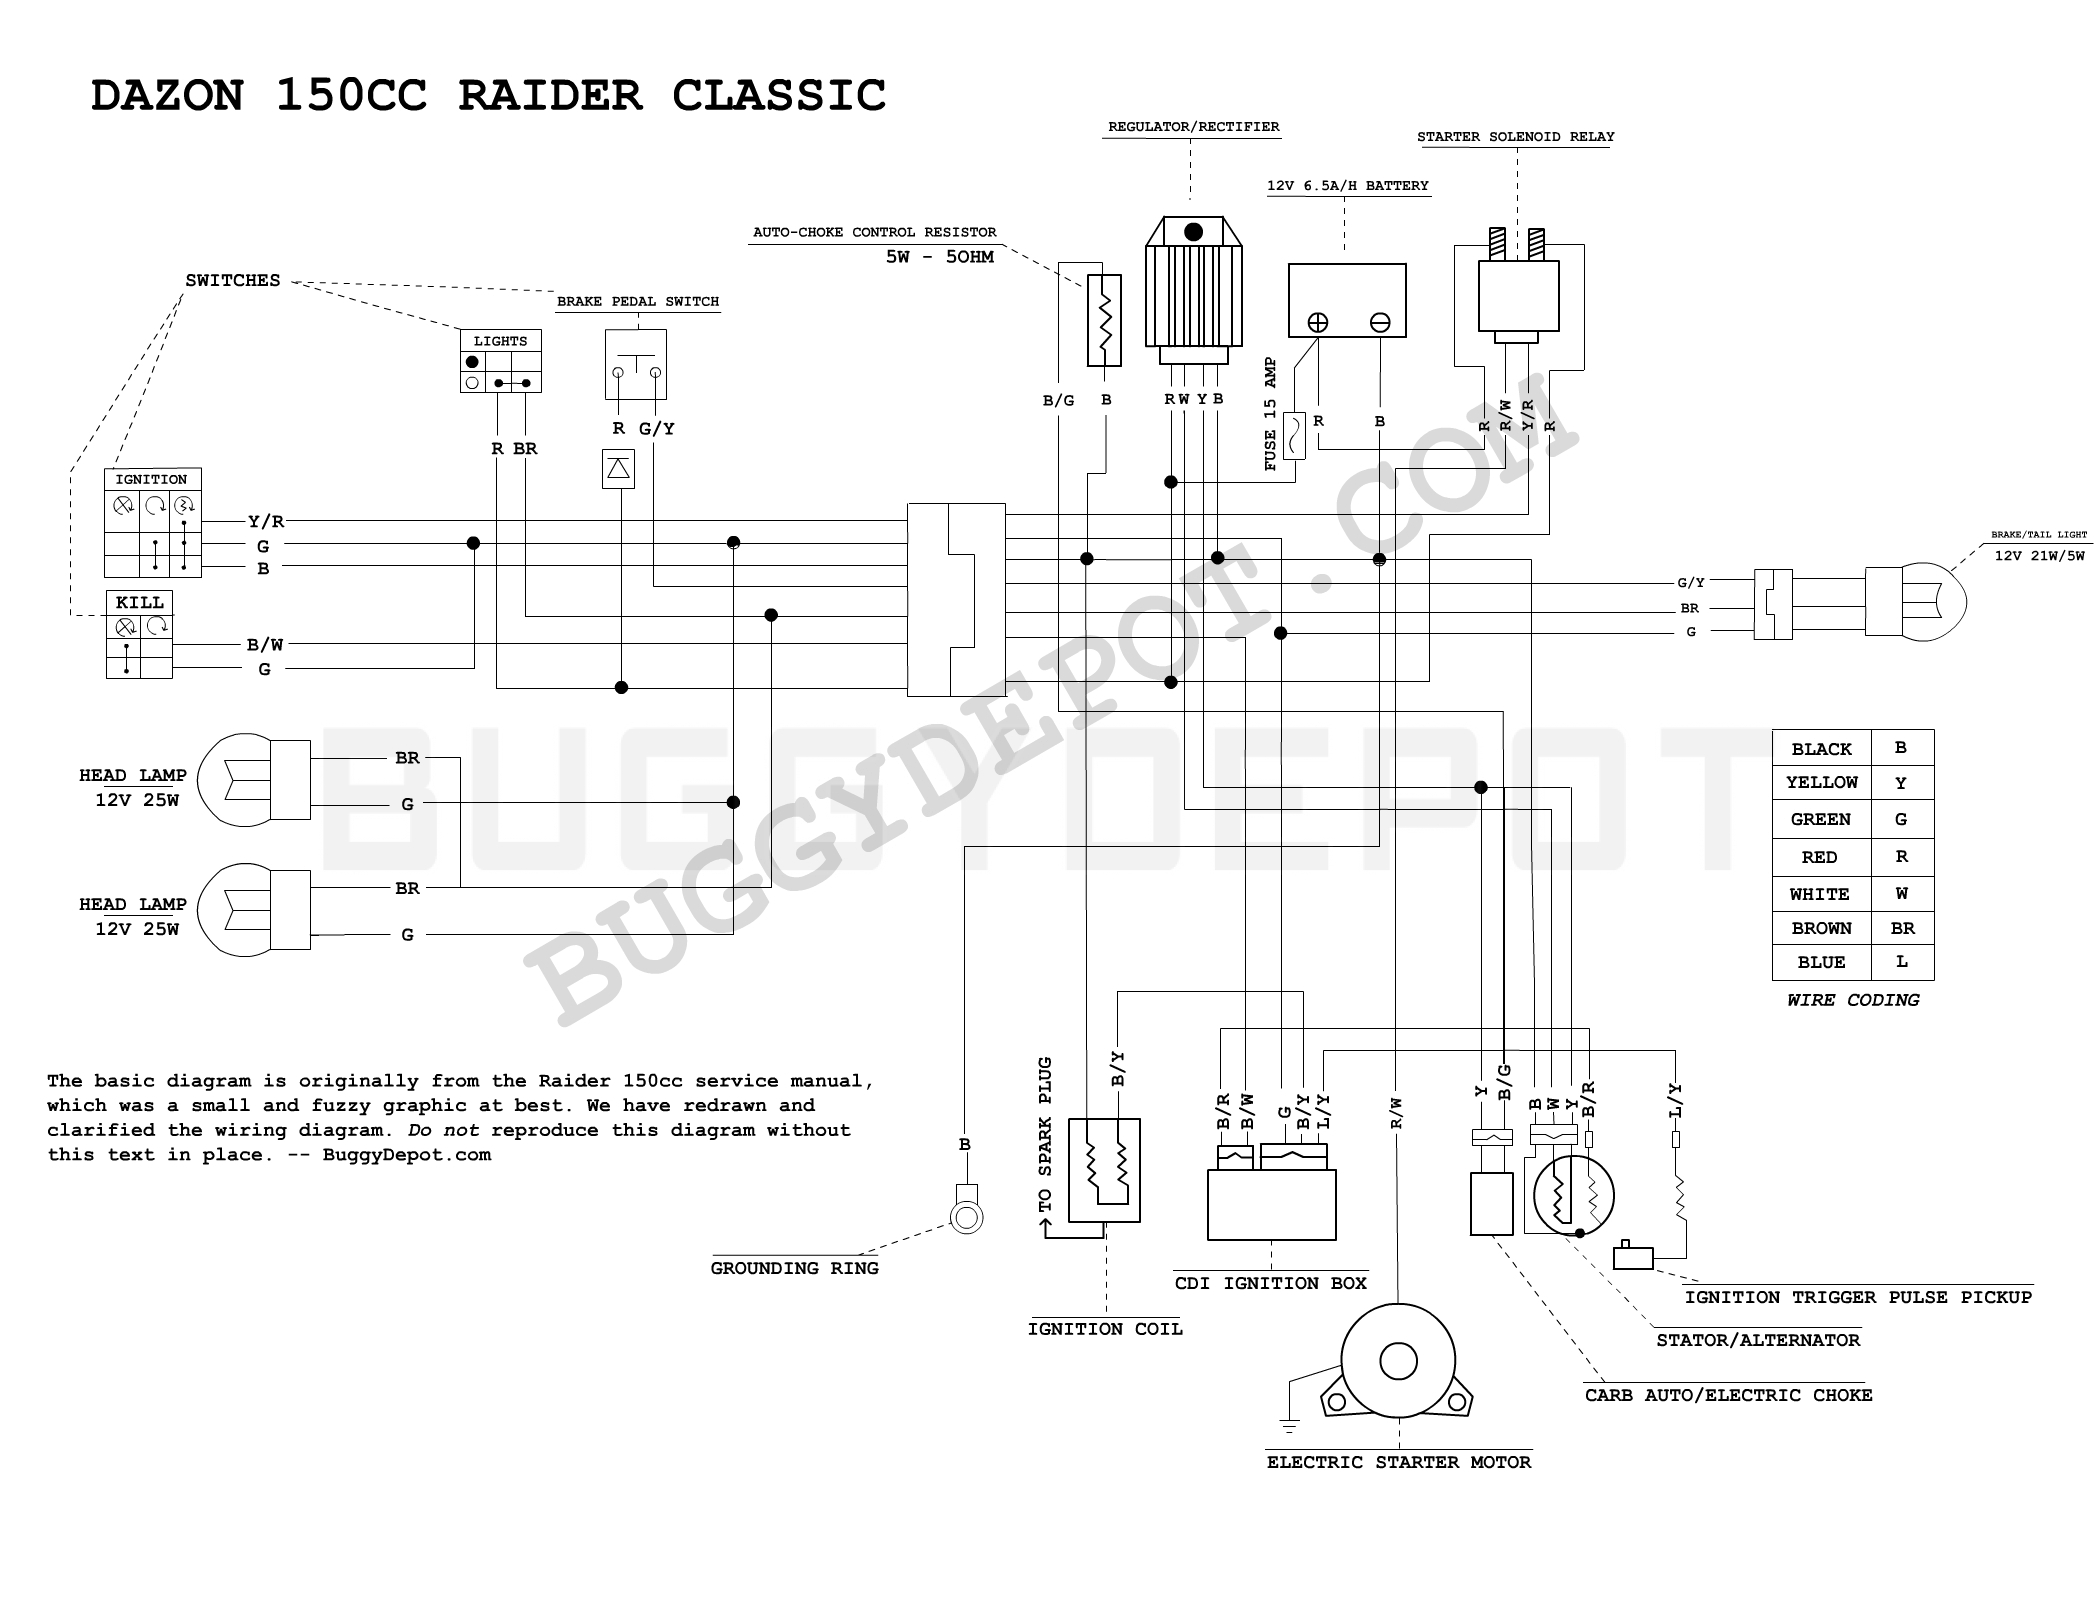 Gy6 150cc Ignition Troubleshooting Guide No Spark Buggy Depot Die Hard Battery Charger Wiring Diagram Dazon Raider Classic